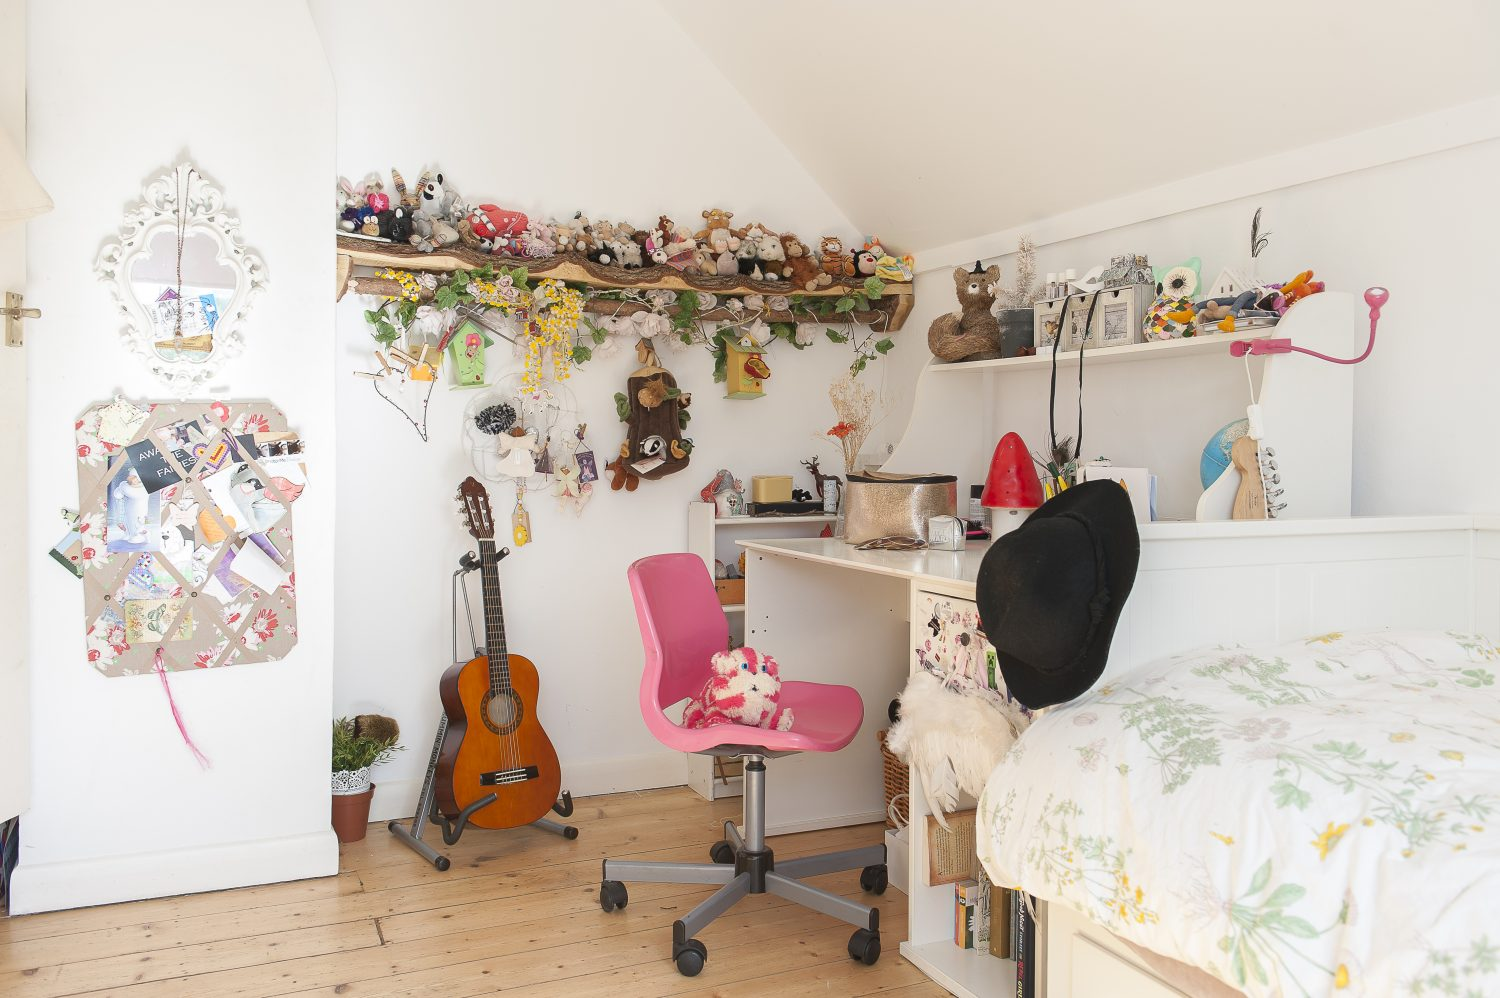 Elsie's bedroom is pure white and is calm and tidy, save for a single rustic oak shelf packed full of teddies and toys